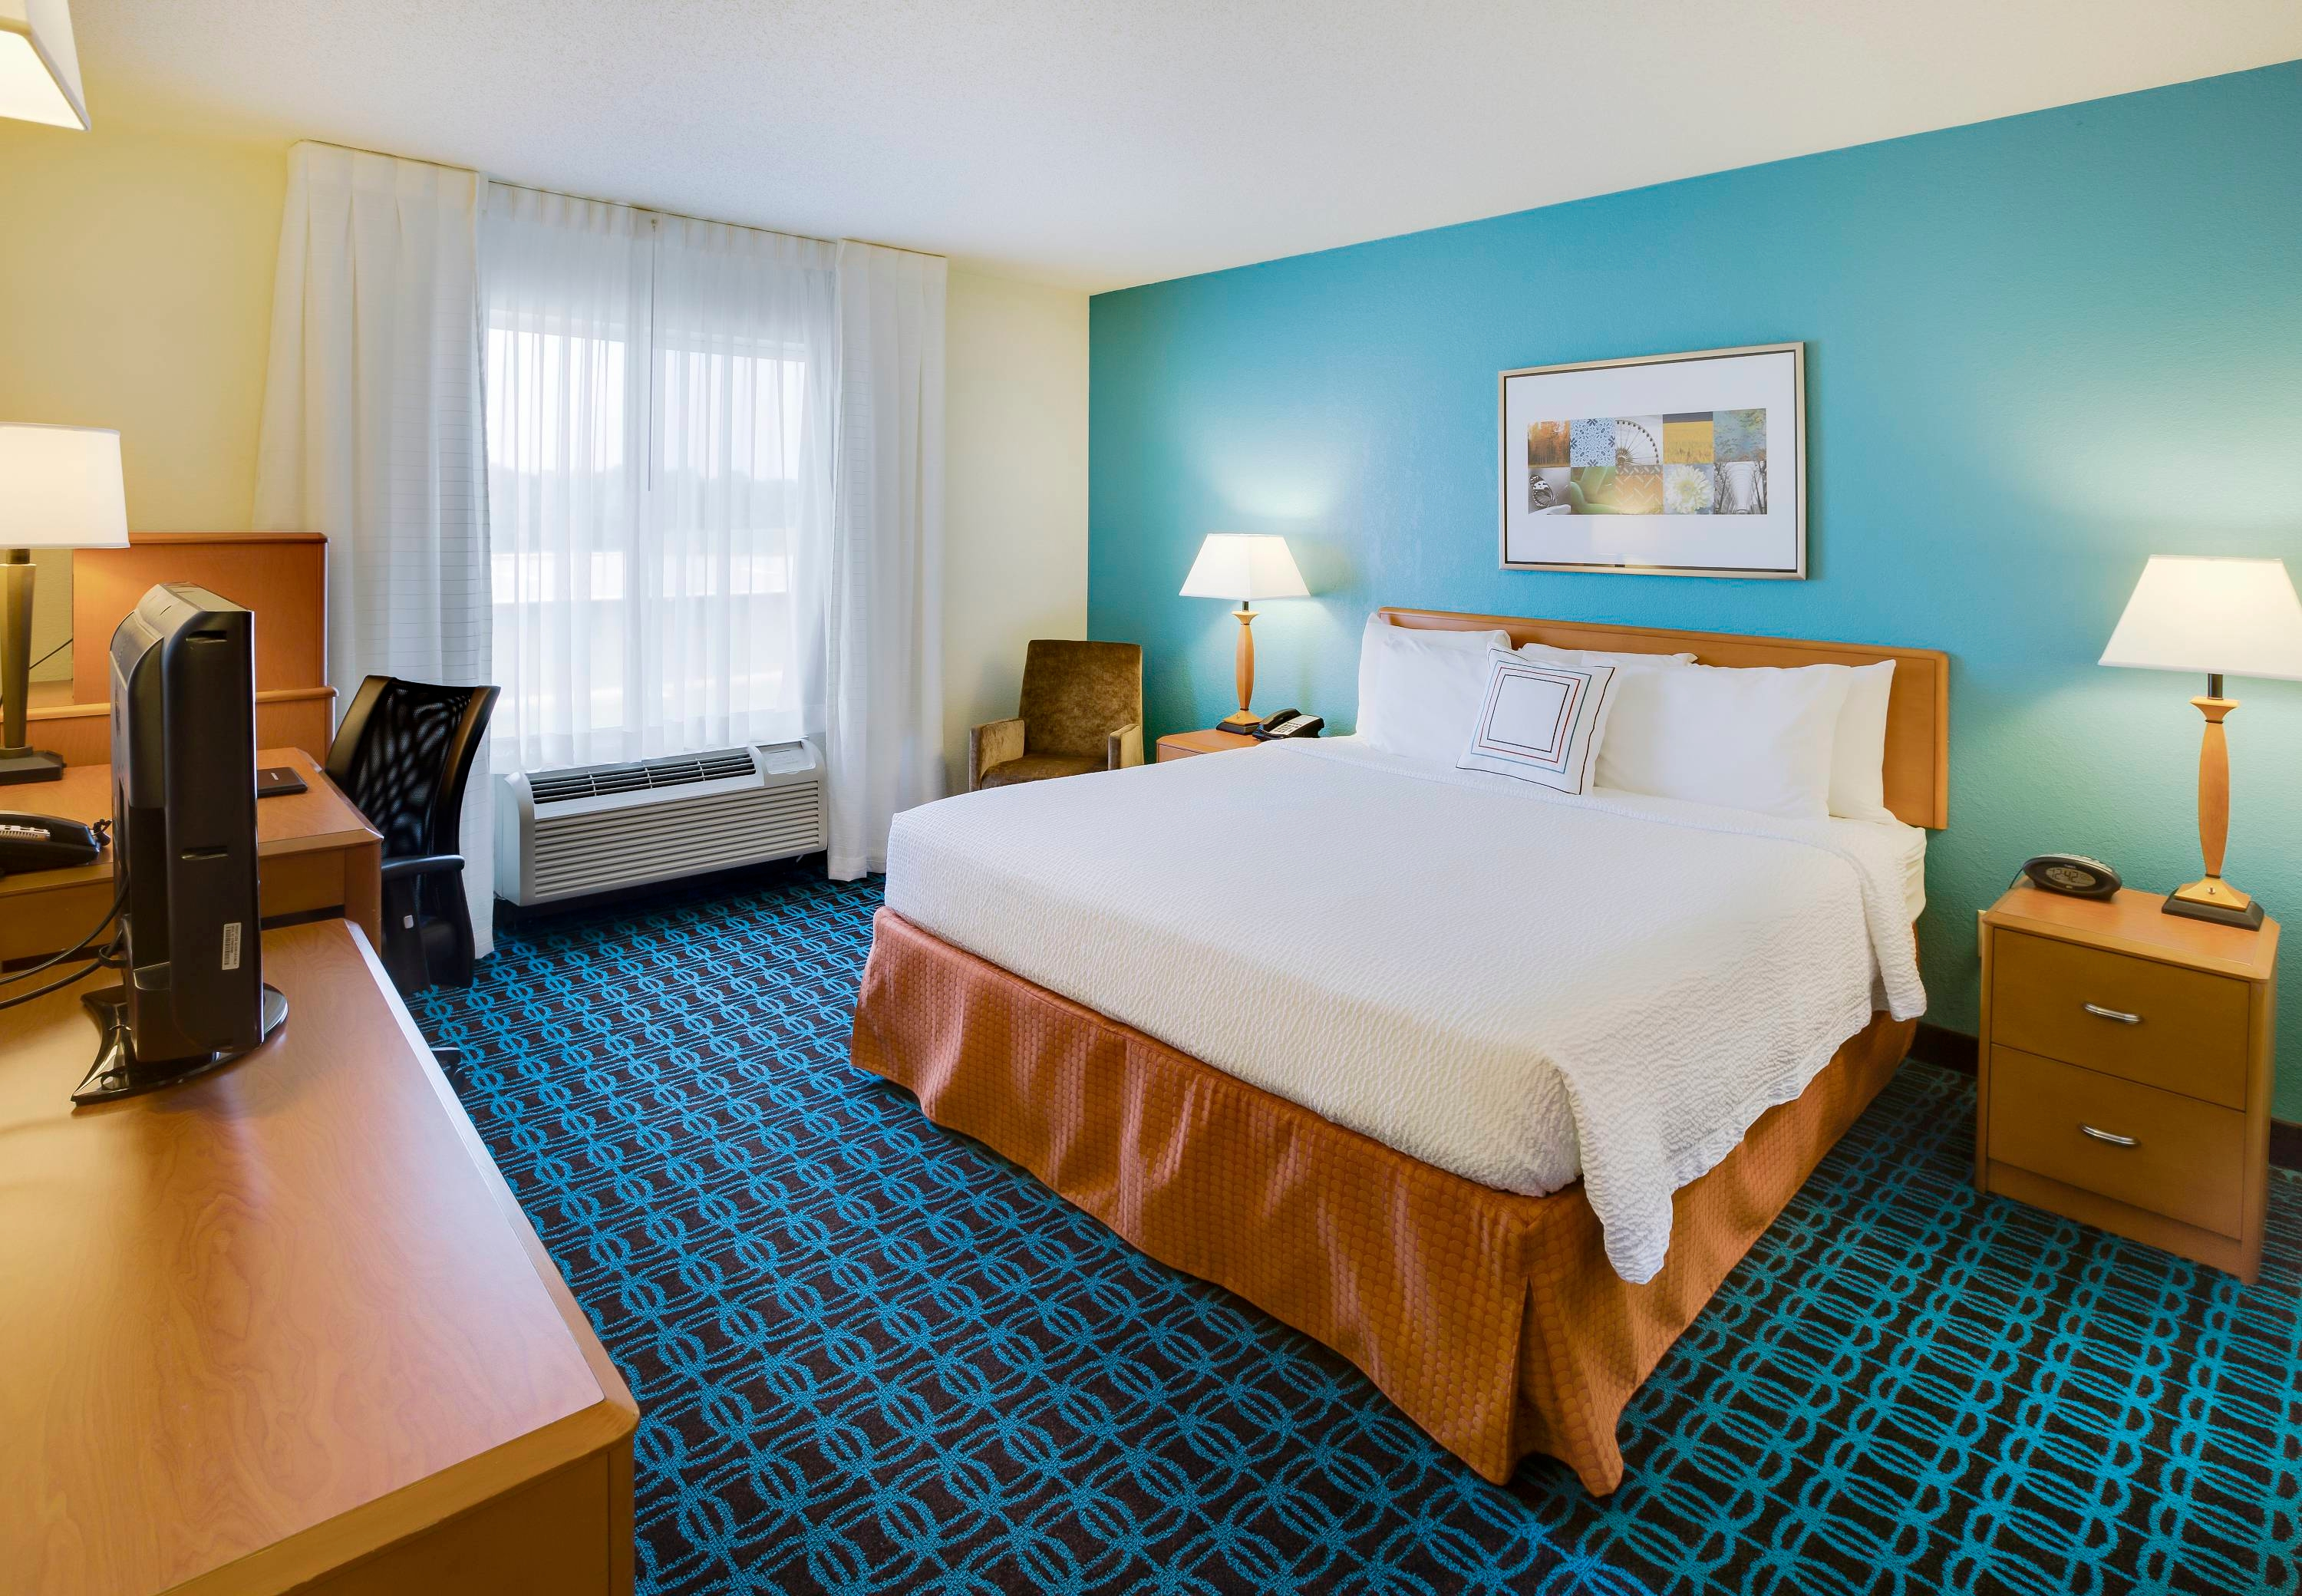 Fairfield Inn & Suites by Marriott South Hill I-85 image 3